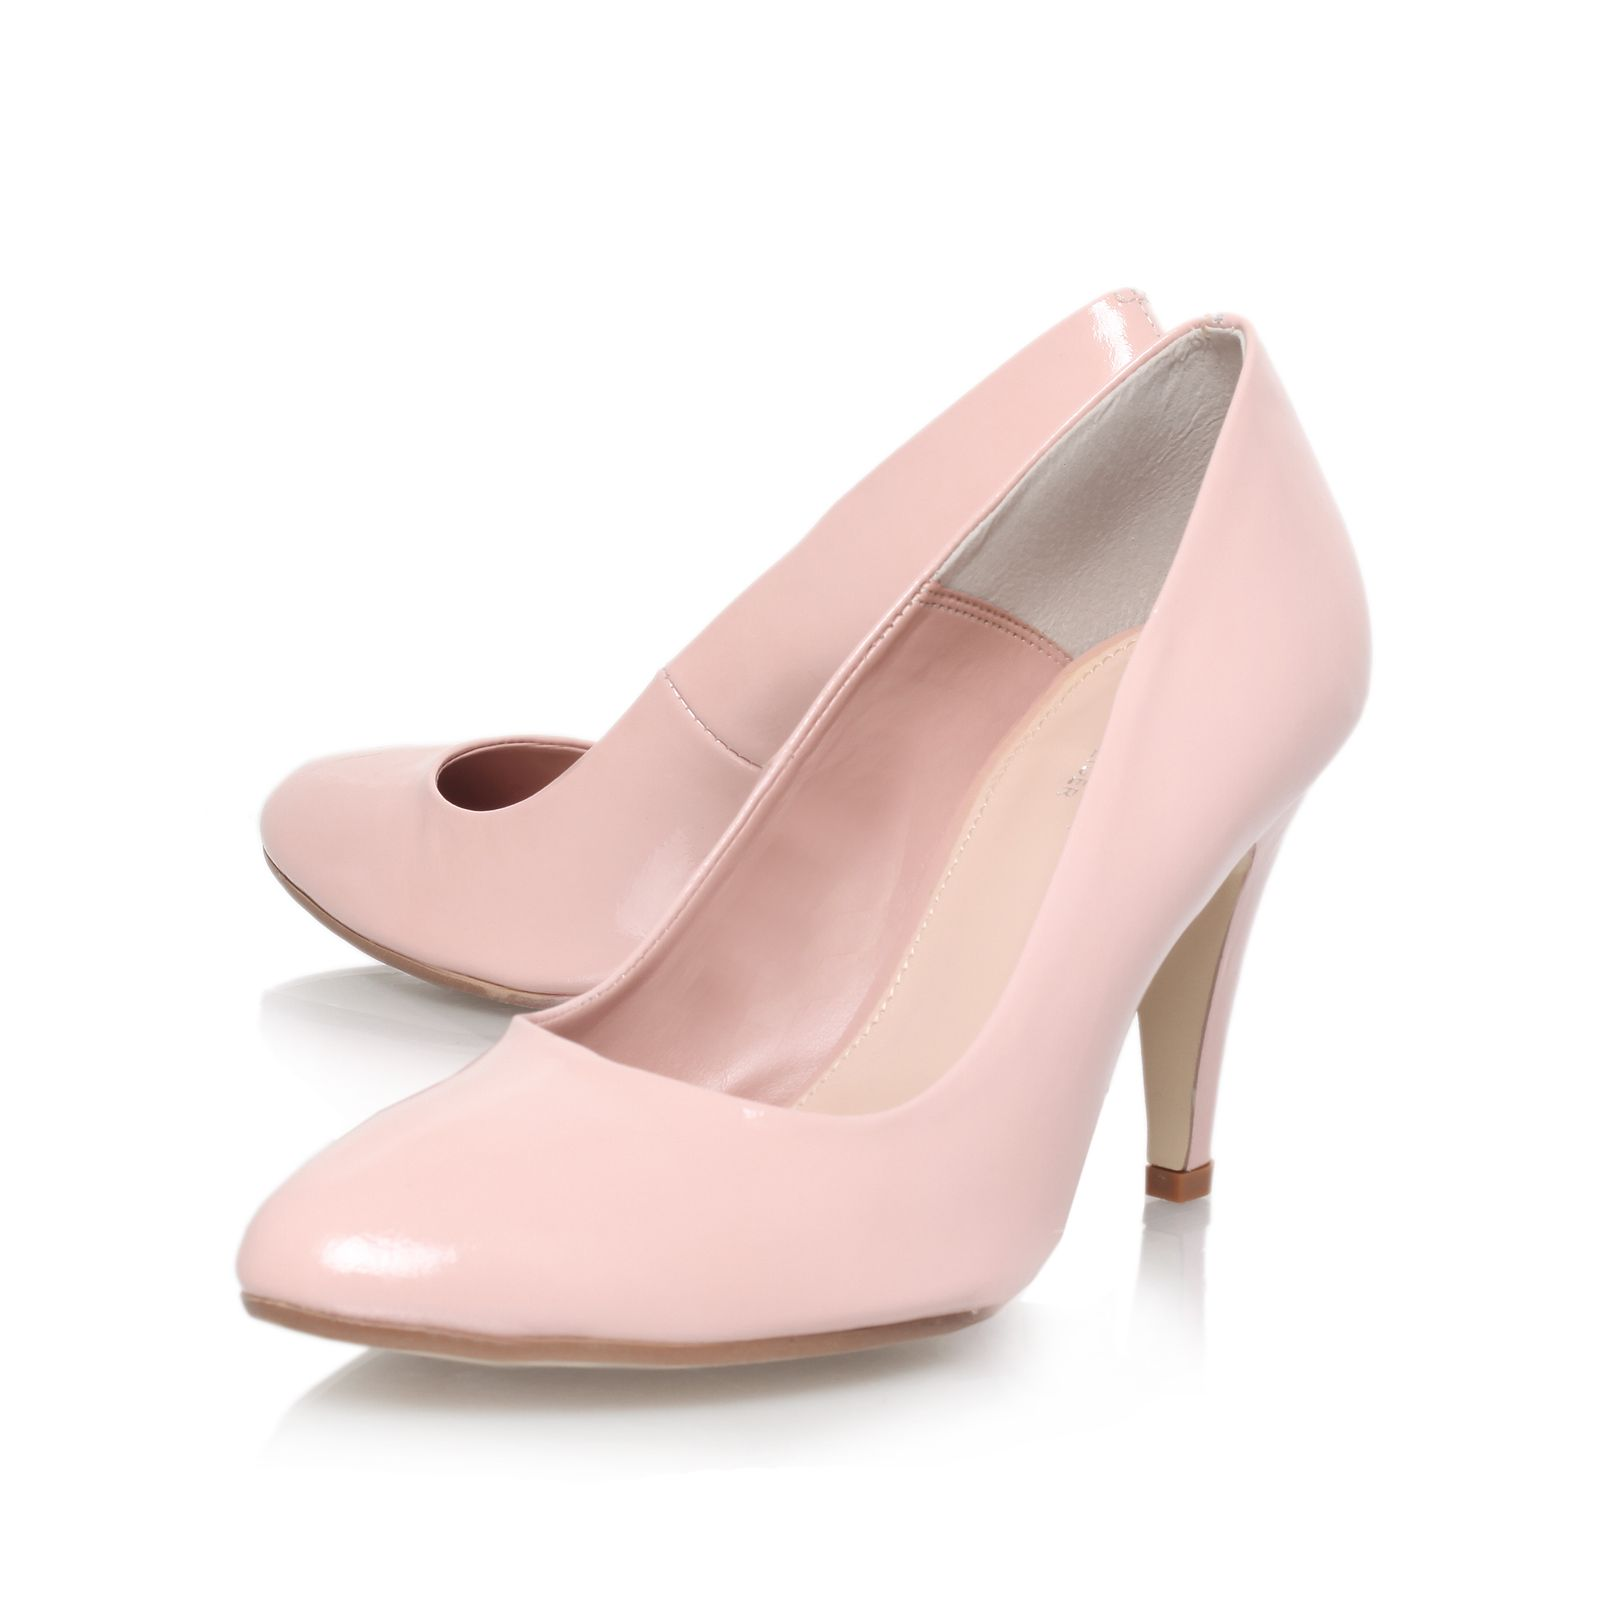 Acid high heel court shoes